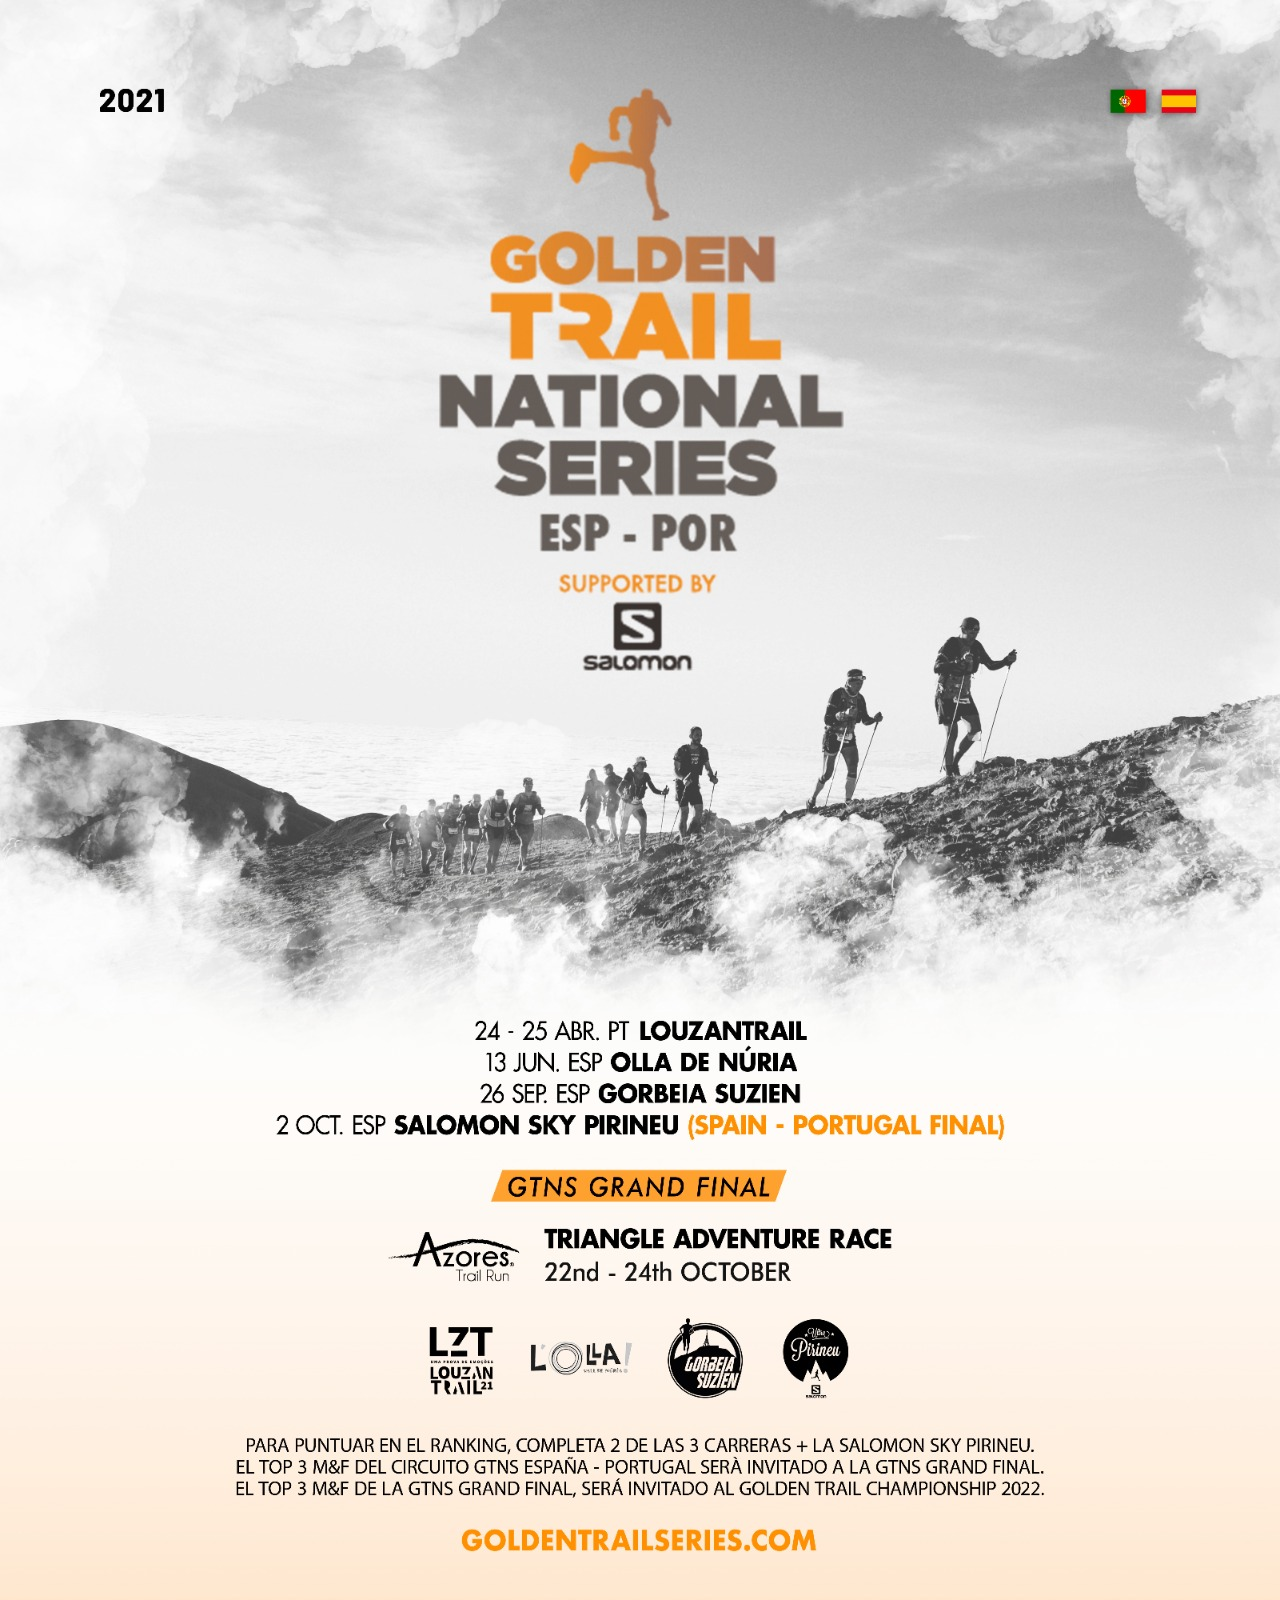 Vuelven Las Golden Trail National Series De España Y Portugal